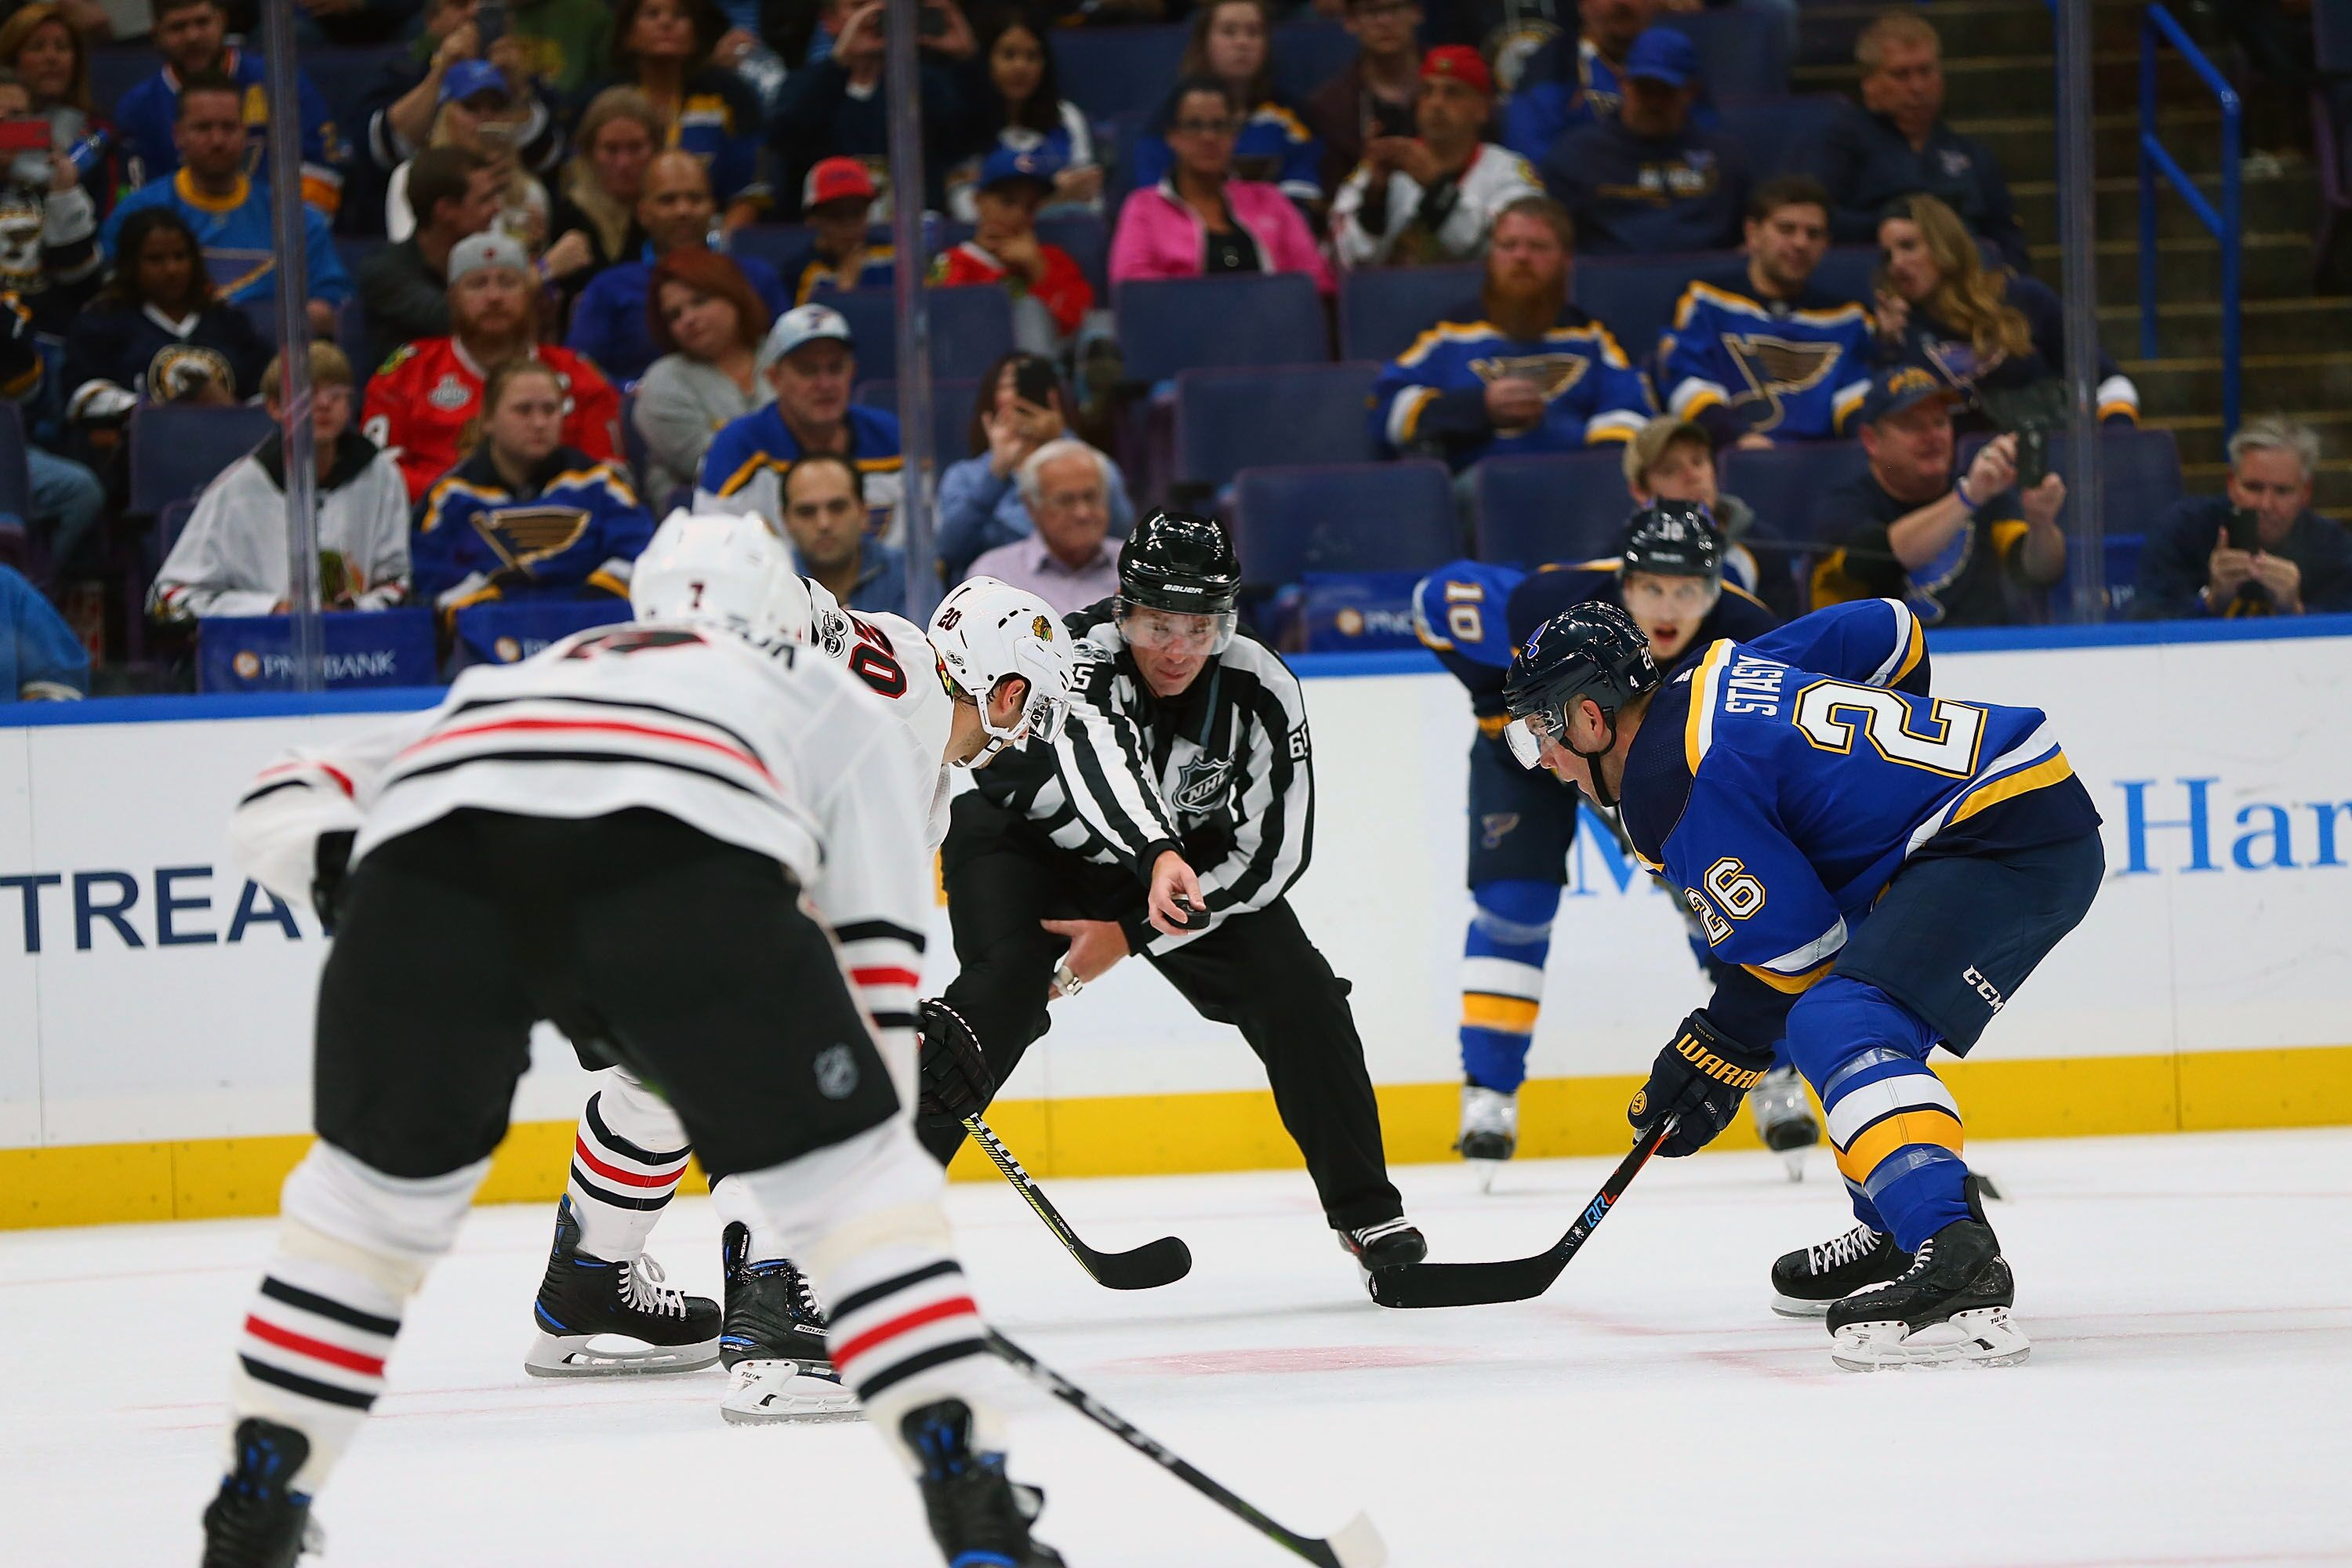 865521716-chicago-blackhawks-v-st-louis-blues.jpg